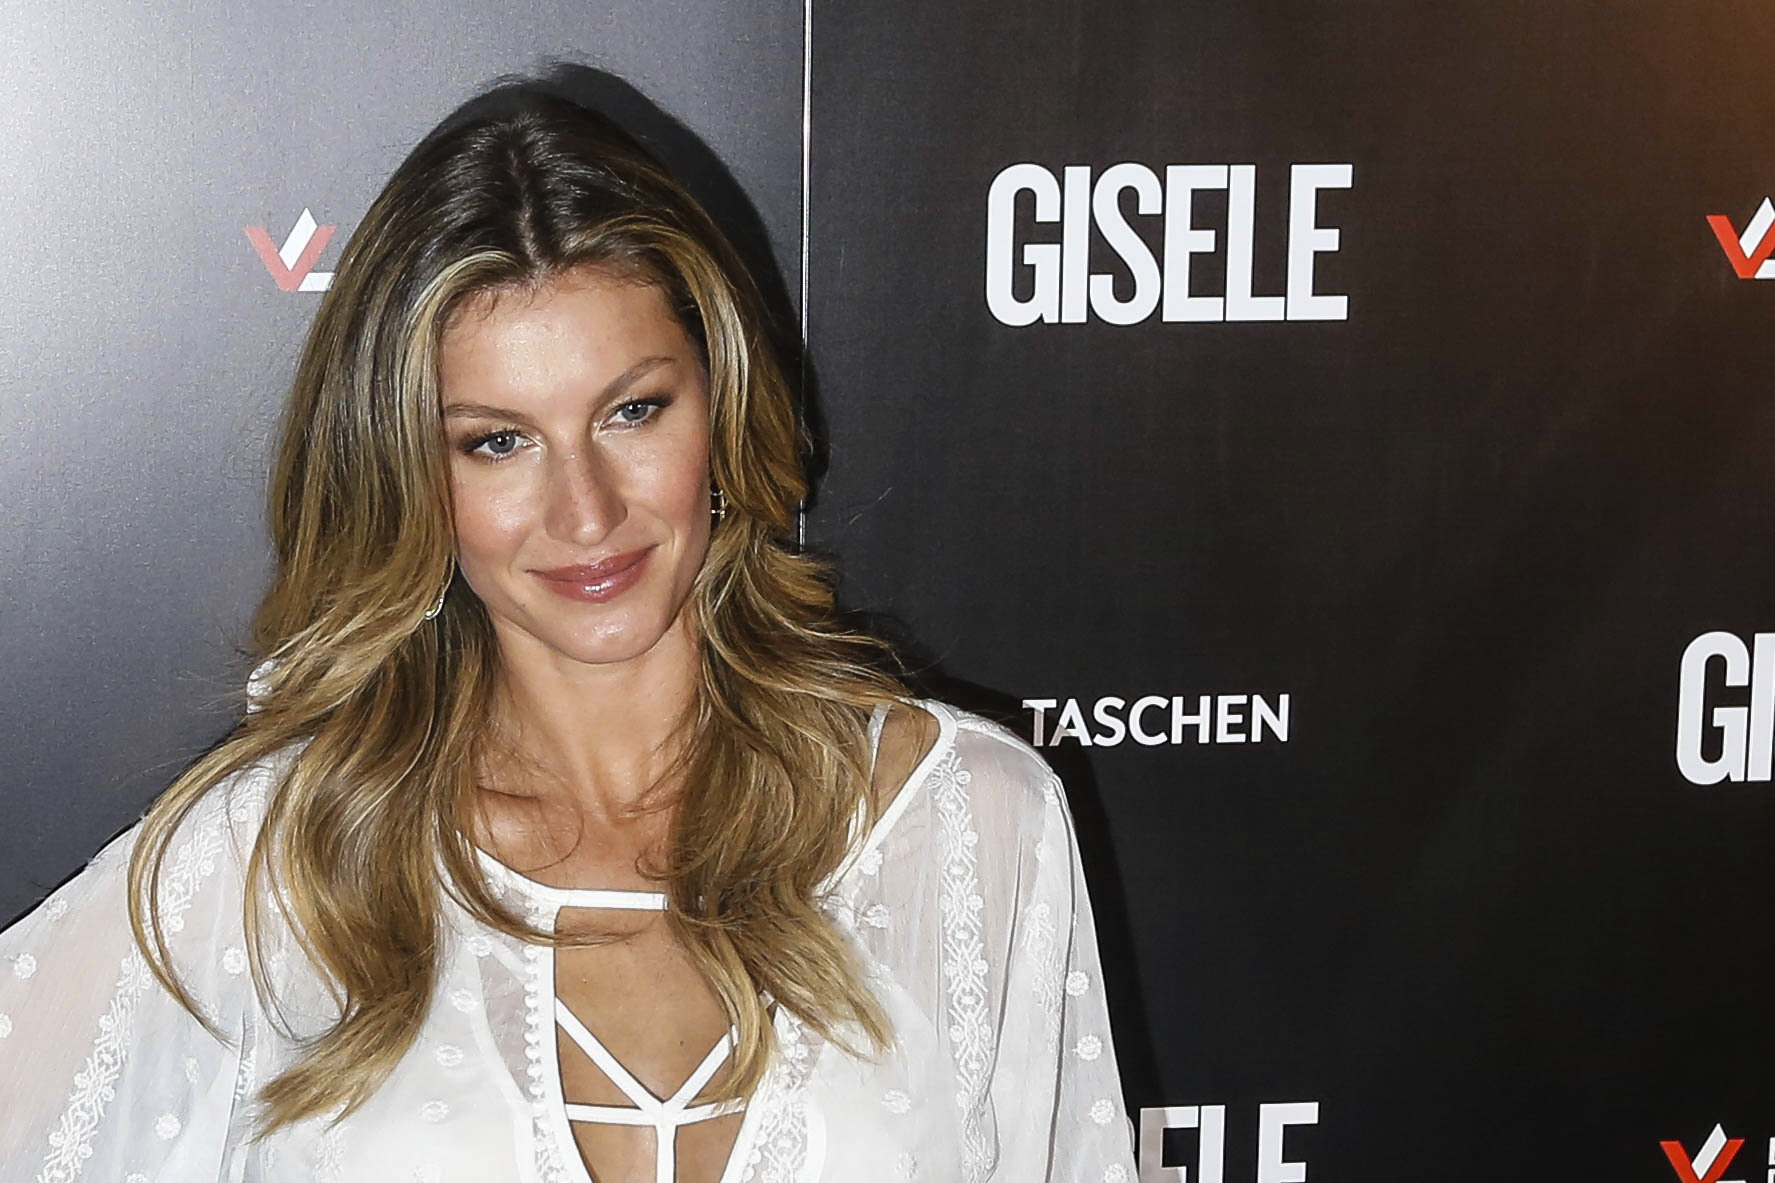 Brazilian model Gisele Bundchen poses for pictures during her book signing on November 06, 2015 in Sao Paulo, Brazil.